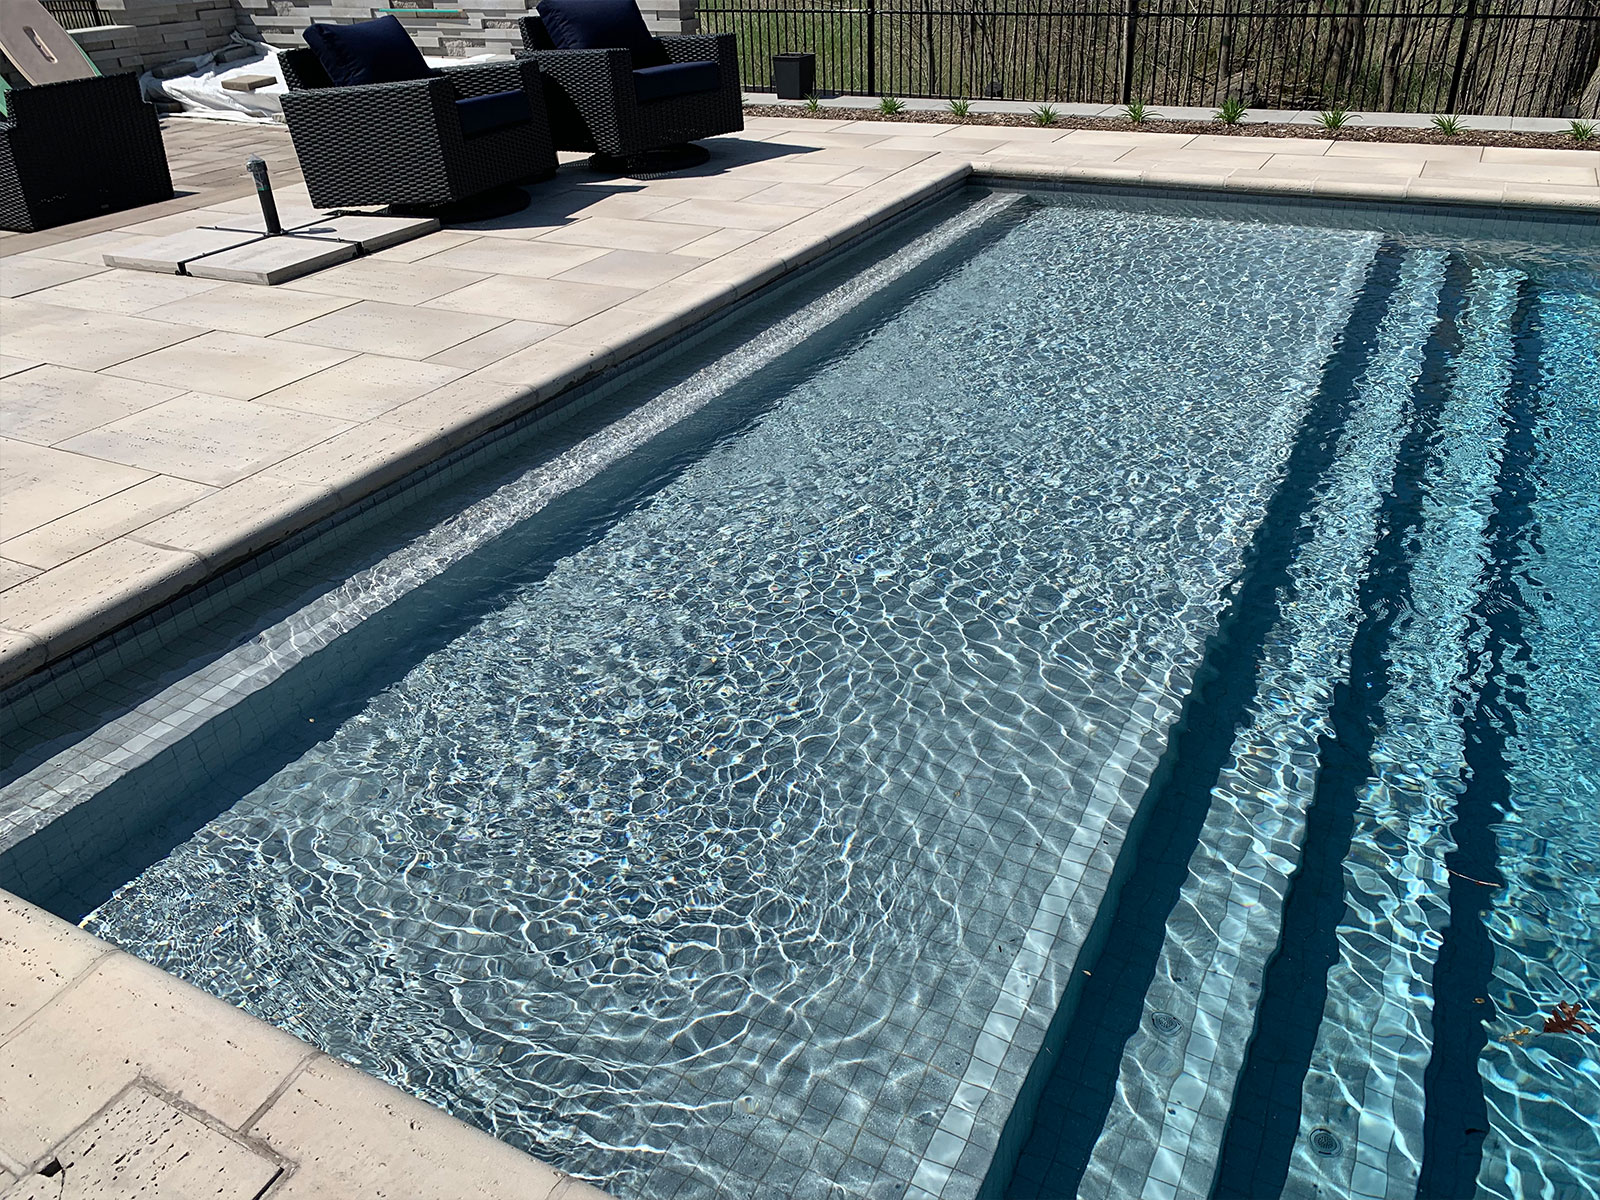 Tiled concrete pool steps and lounge